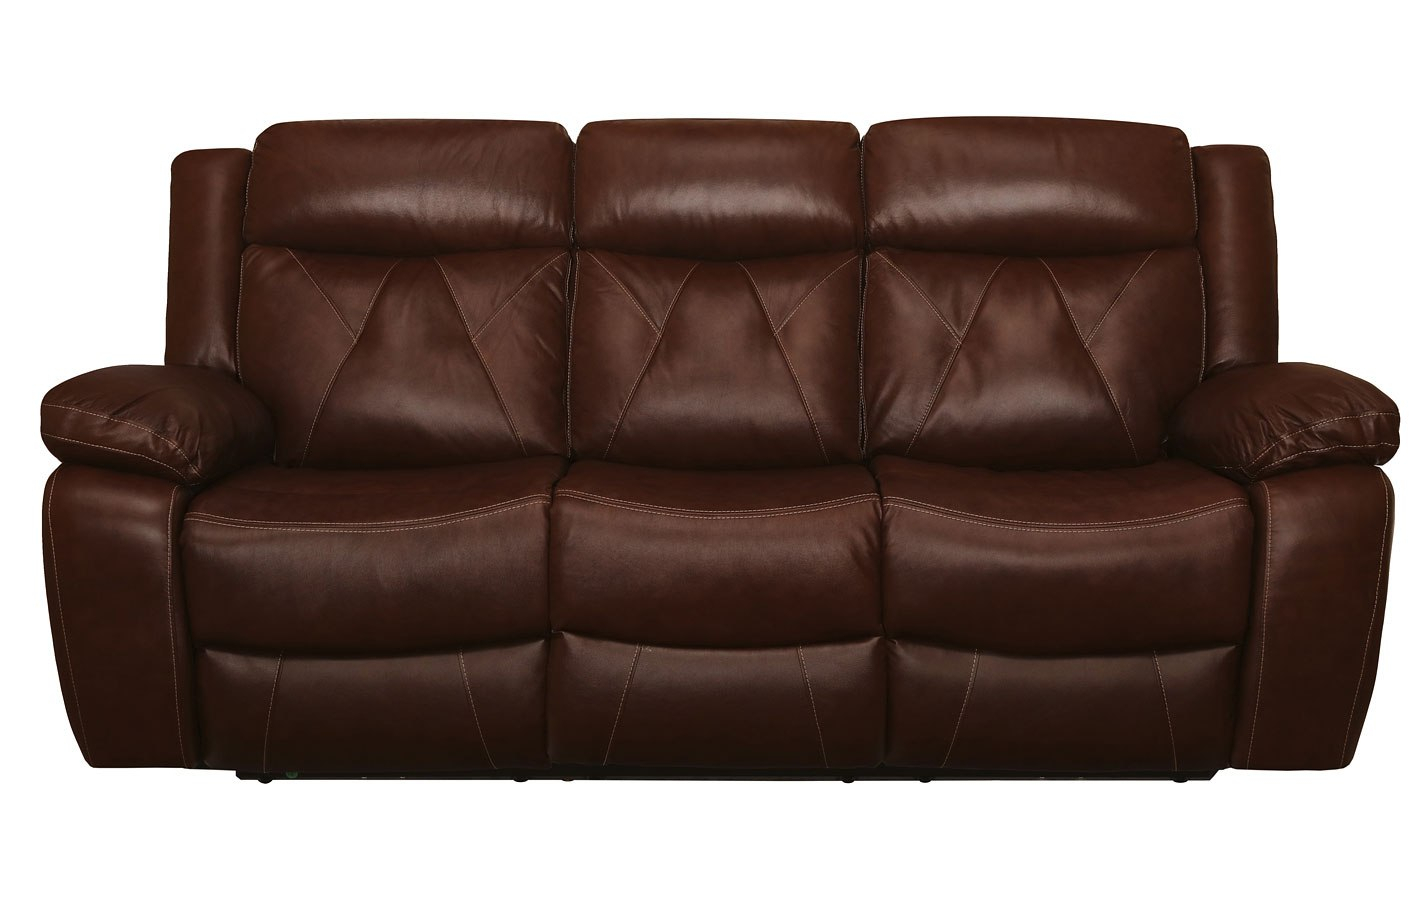 Benedict Dual Reclining Sofa (Light Brown) New Classic With Regard To Brown Sofa Chairs (View 8 of 15)